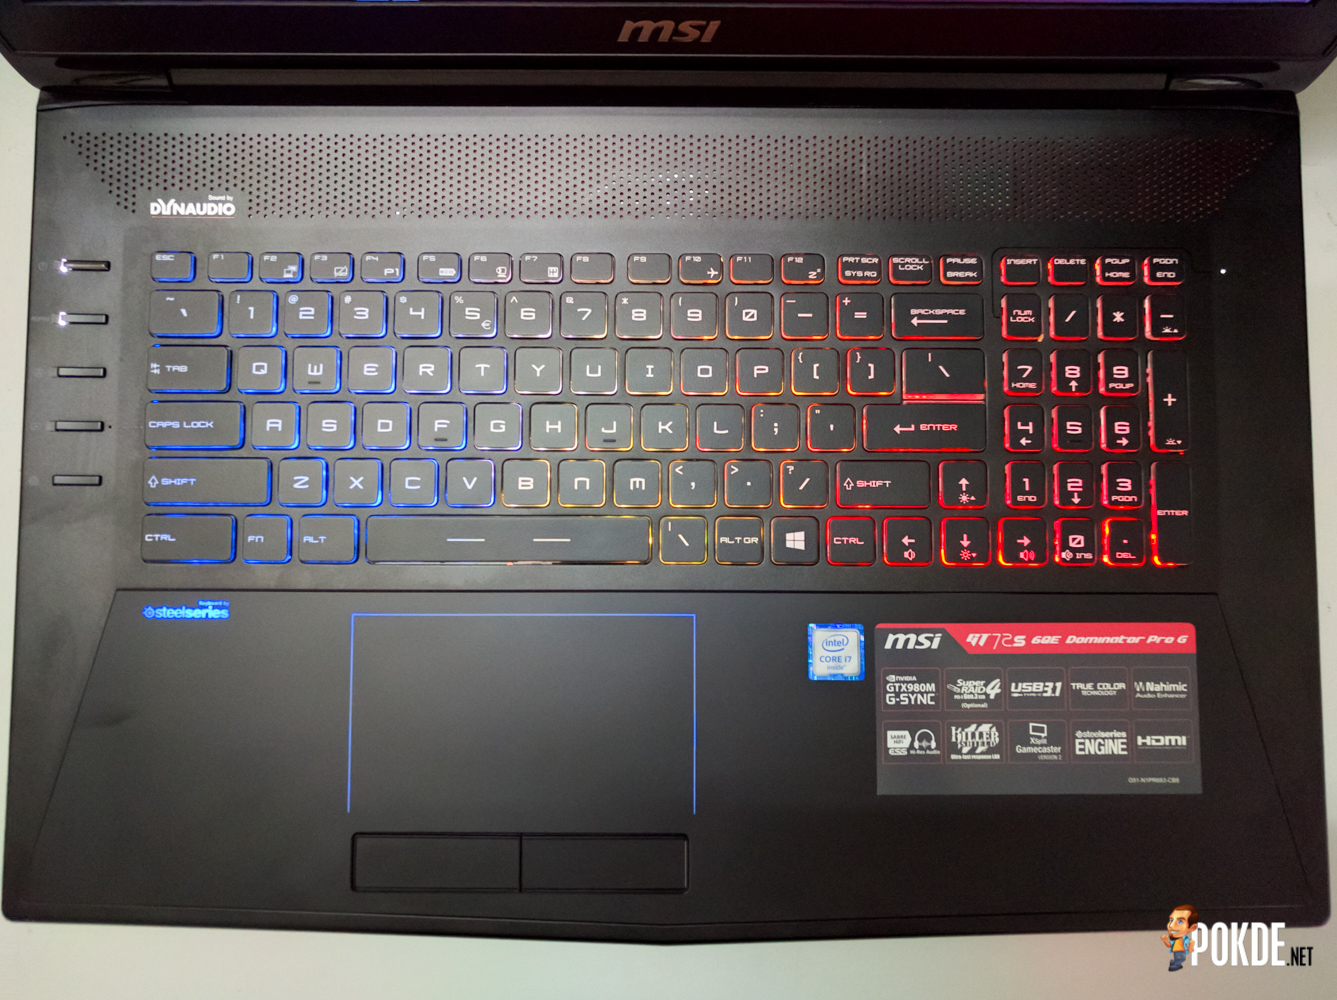 Unlocked Previous Msi Gt72 Dominator Geek Tattoos Gt72s 6qf Pro G Gaming Laptop Dragon Edition Heres A Better Look At The Lower Half Of 6qe